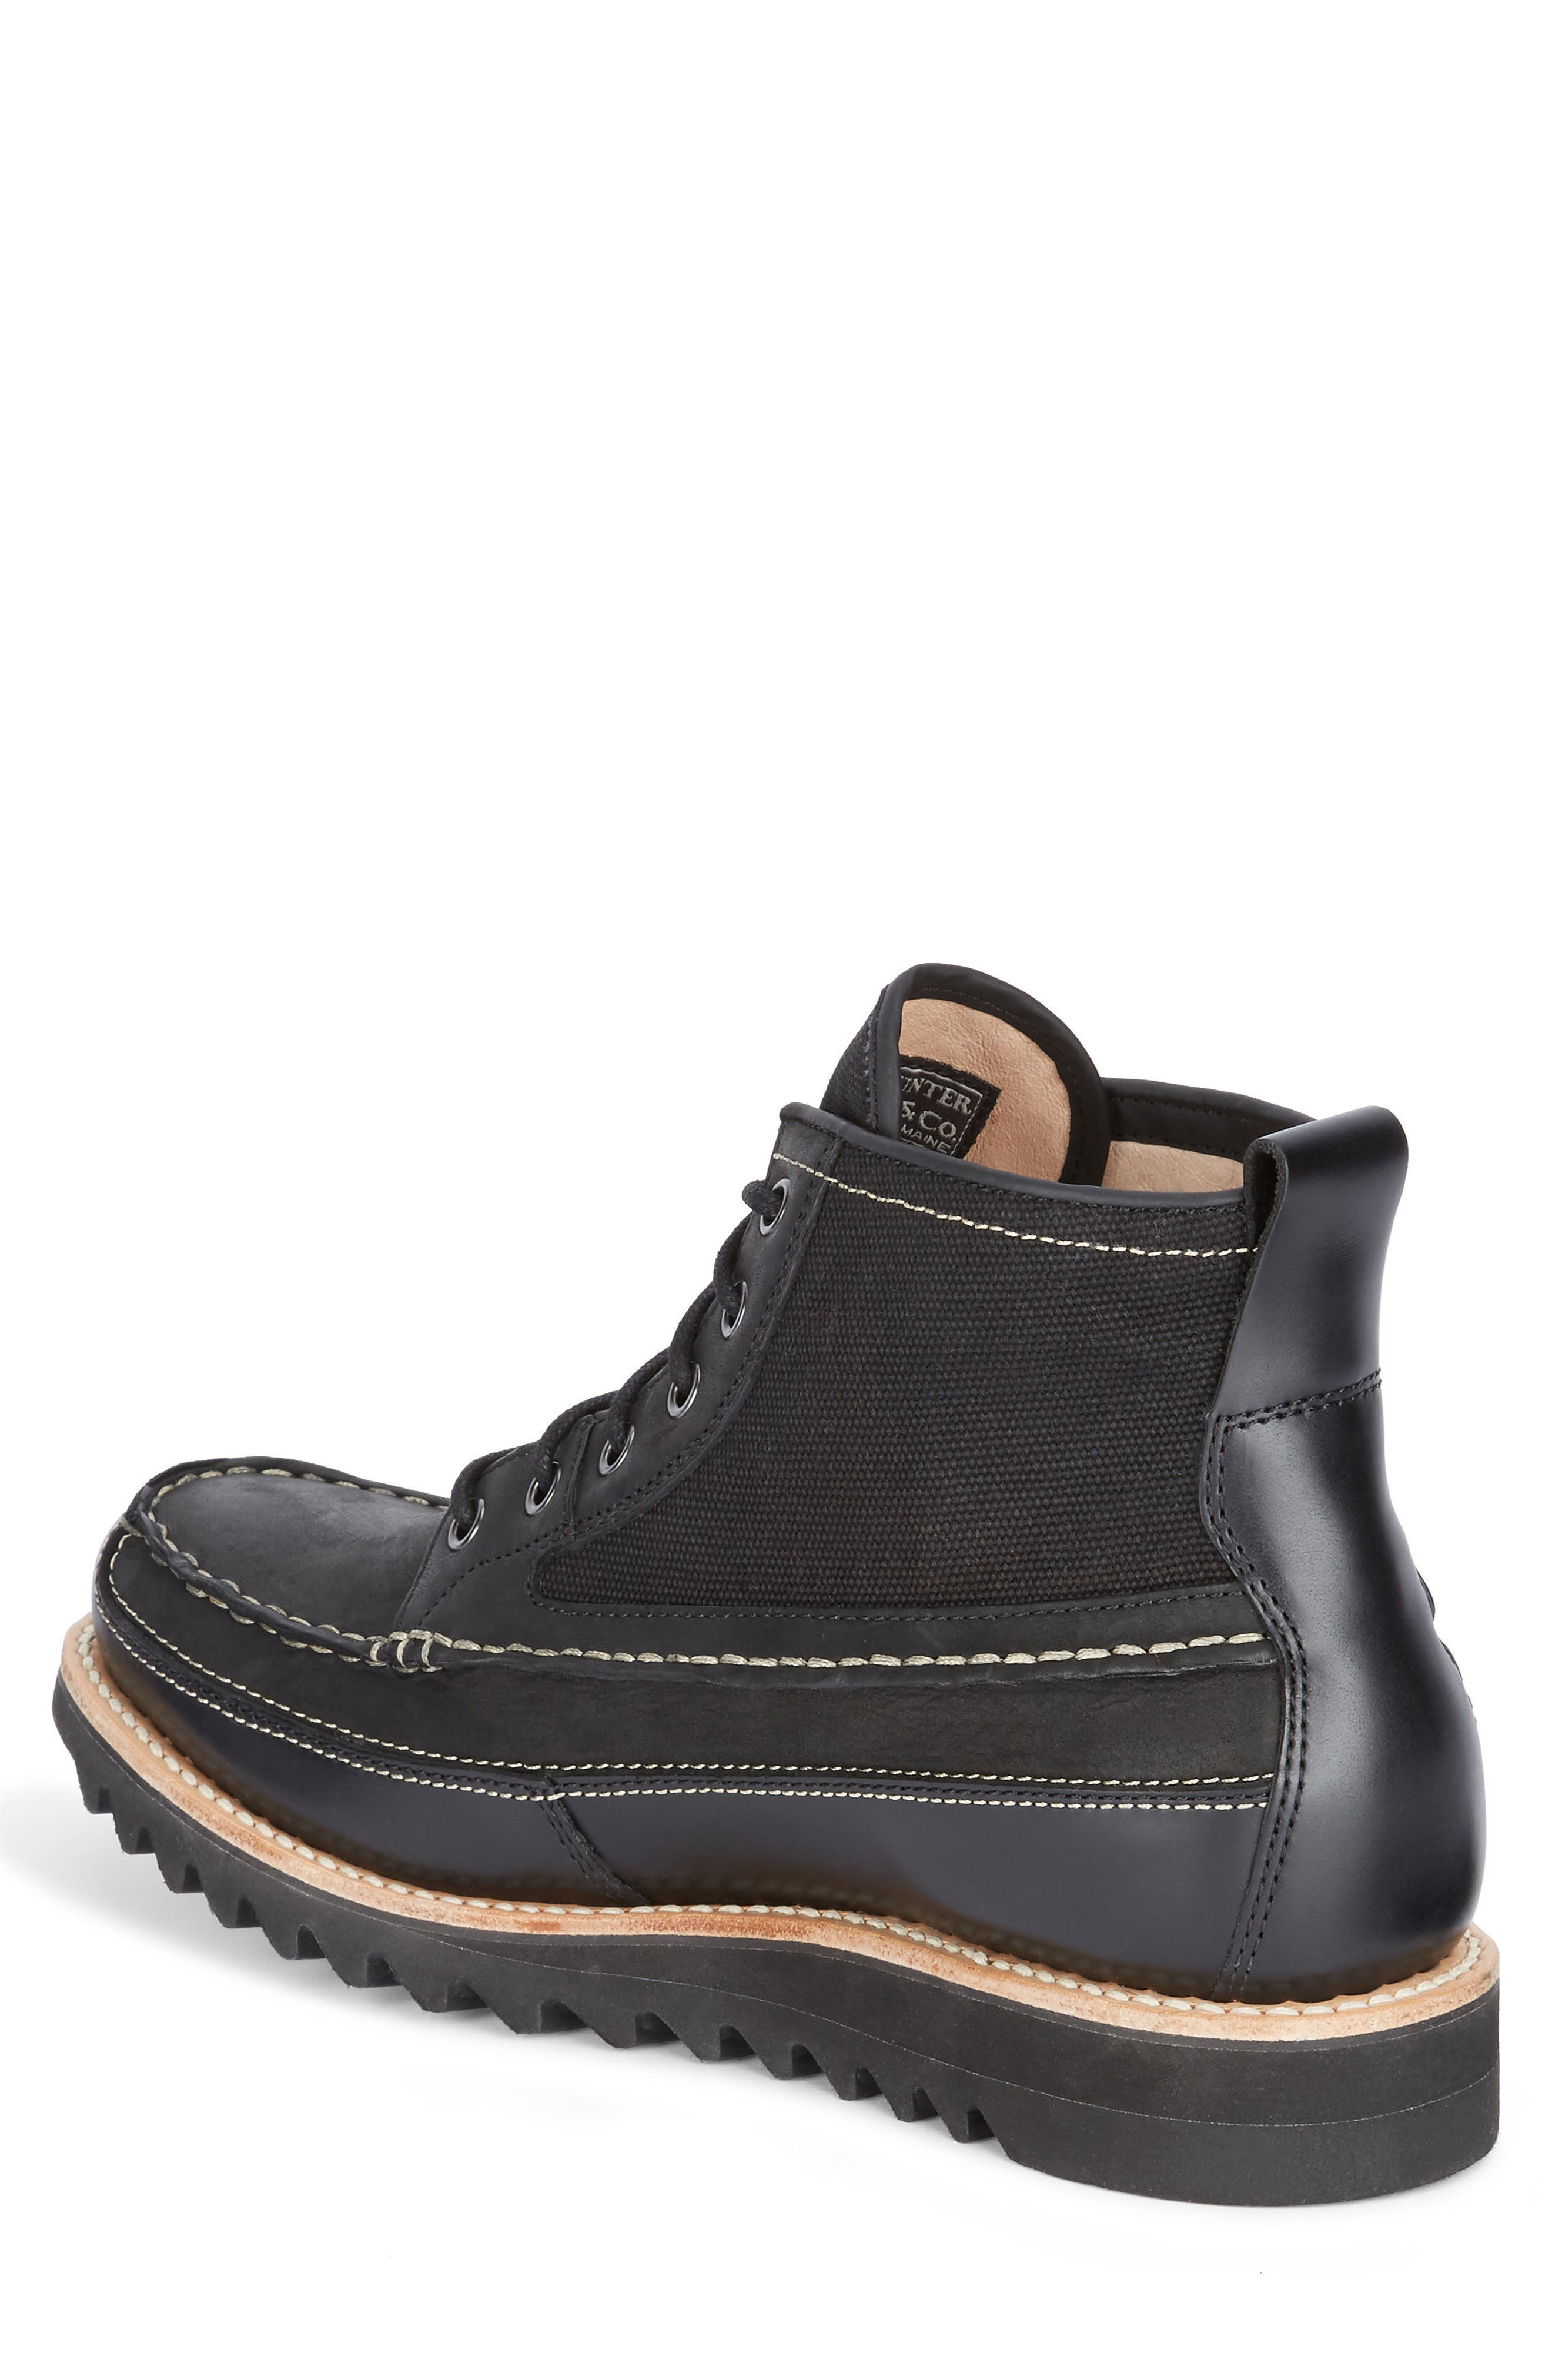 Nickson Razor Moc Toe Boot,                             Alternate thumbnail 2, color,                             001